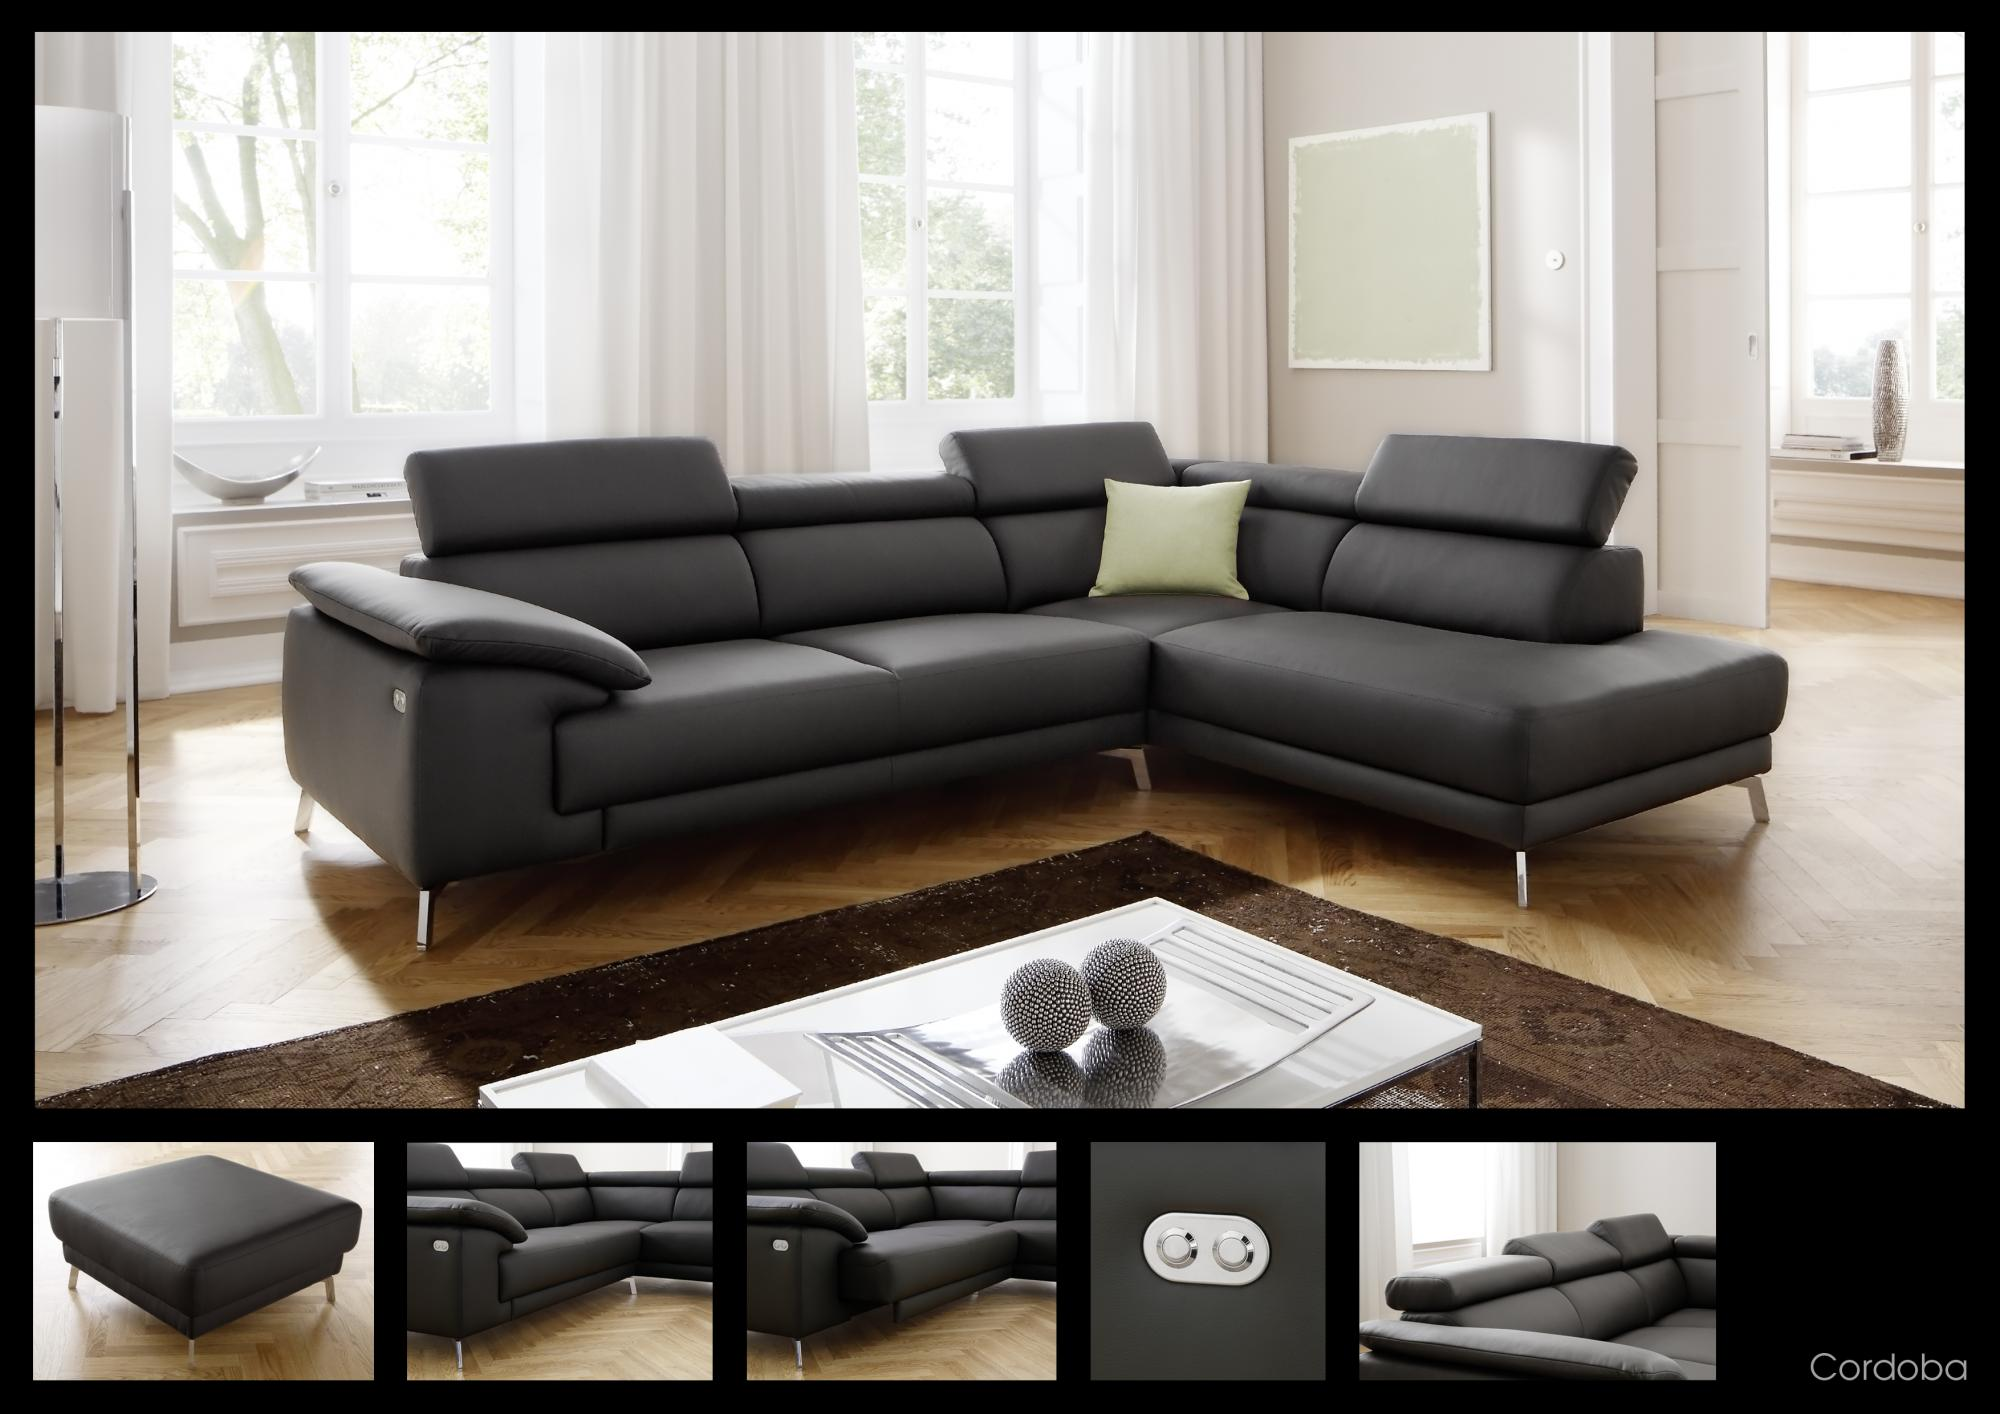 moderne sofas kieppe. Black Bedroom Furniture Sets. Home Design Ideas